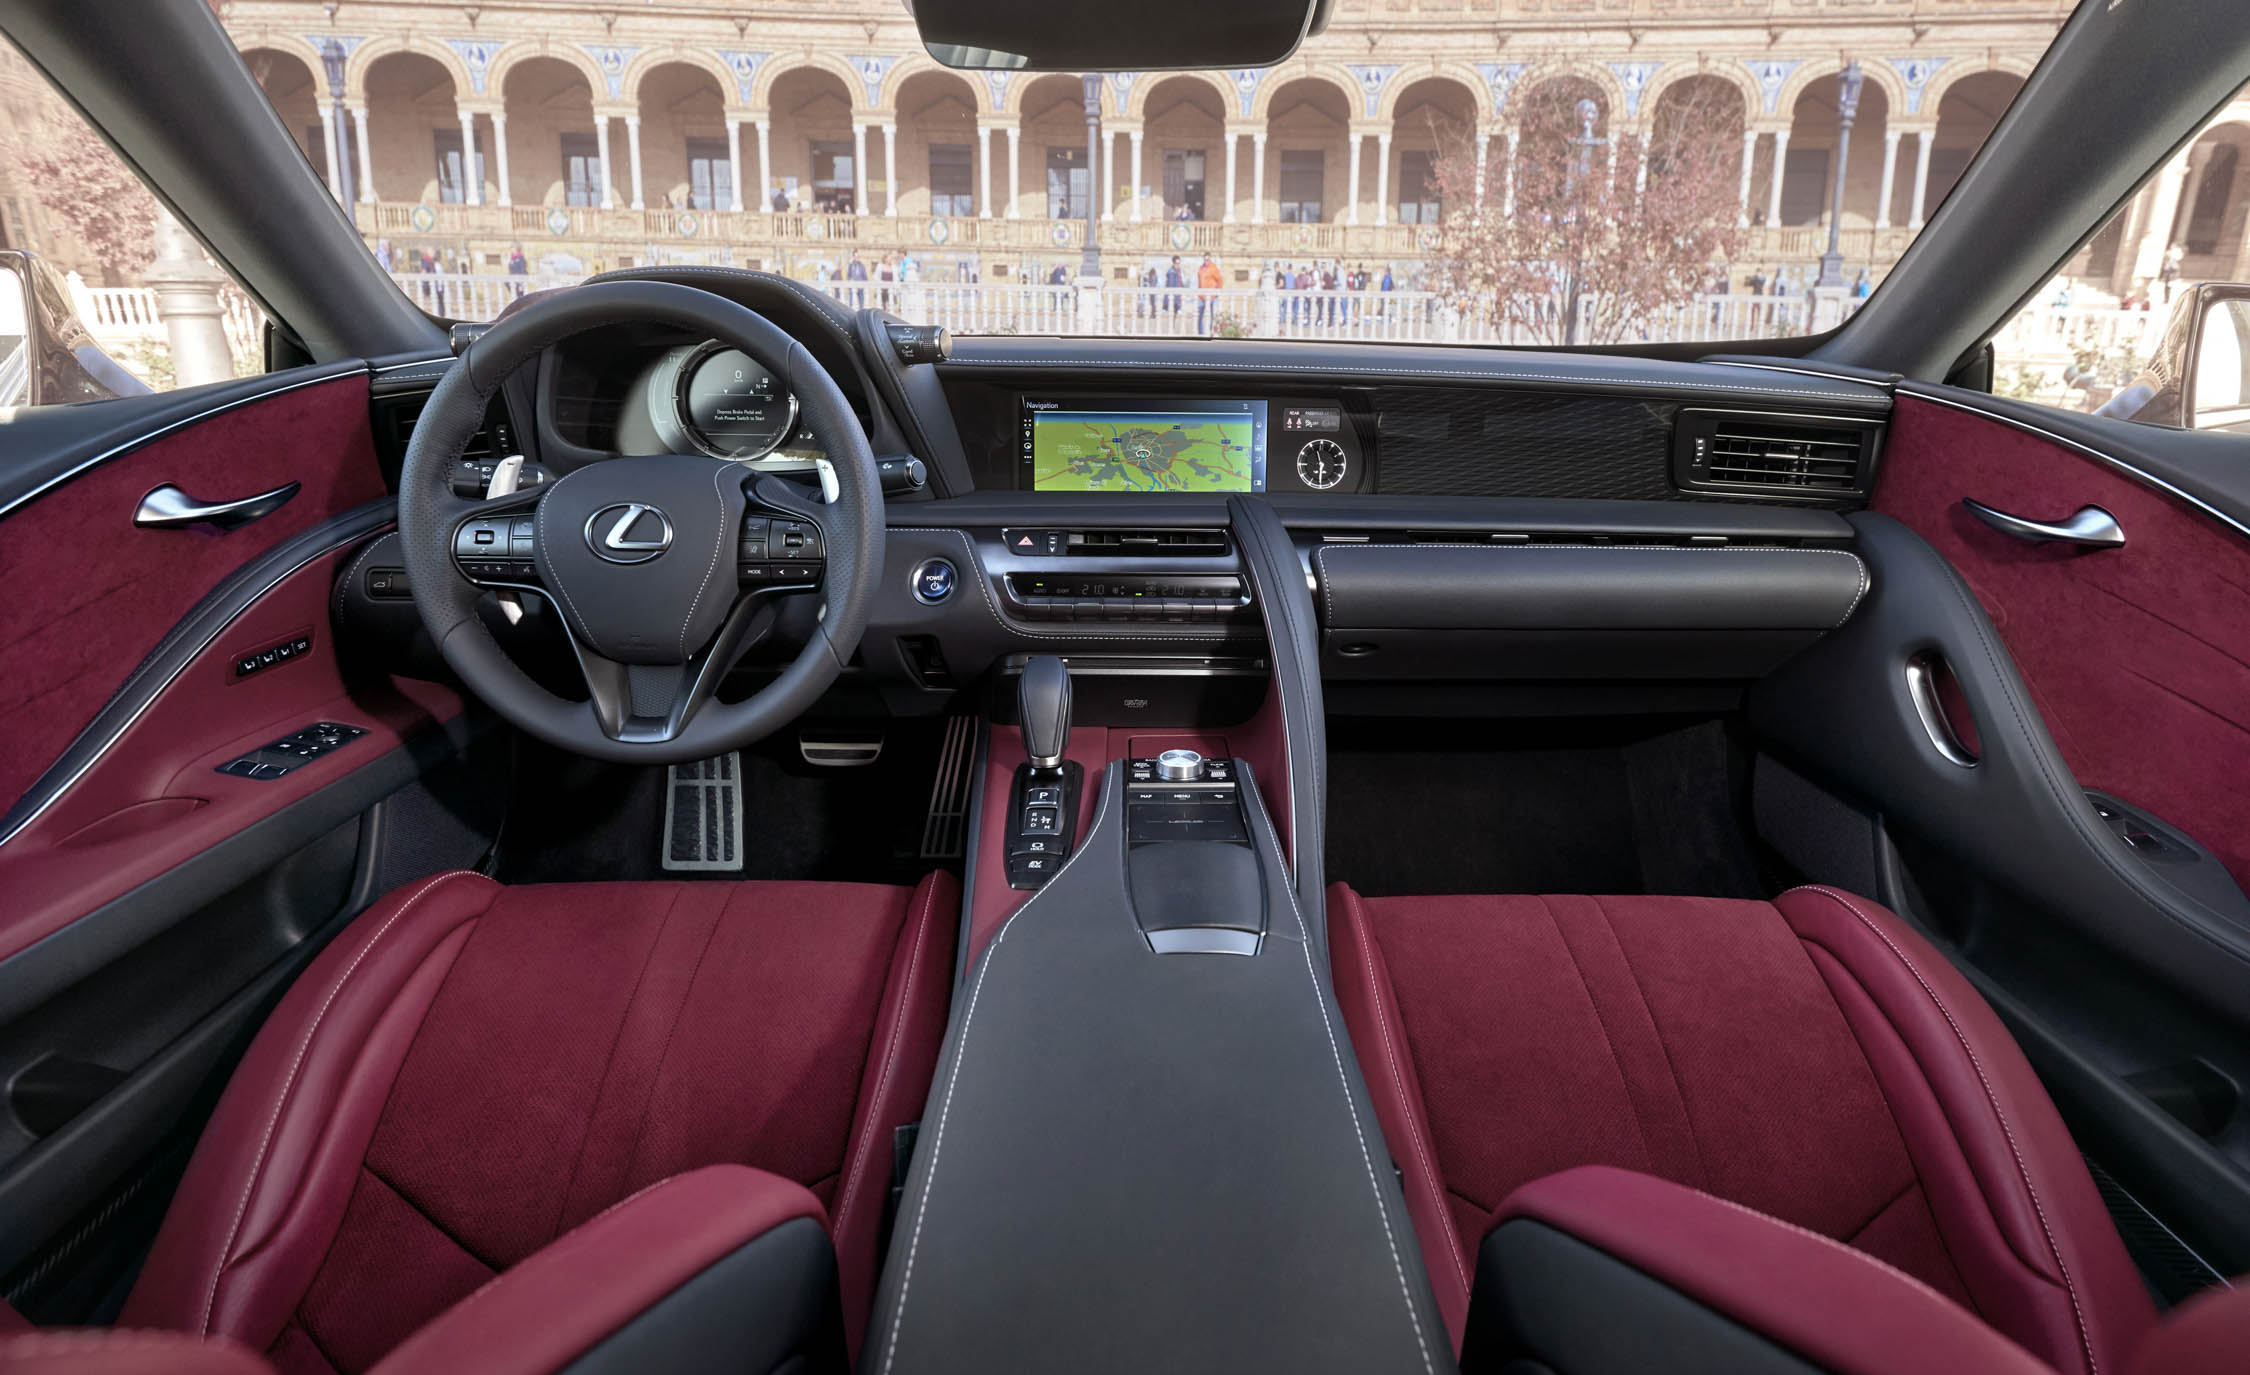 2018 Lexus Lc 500h Interior Dashboard (Photo 54 of 84)